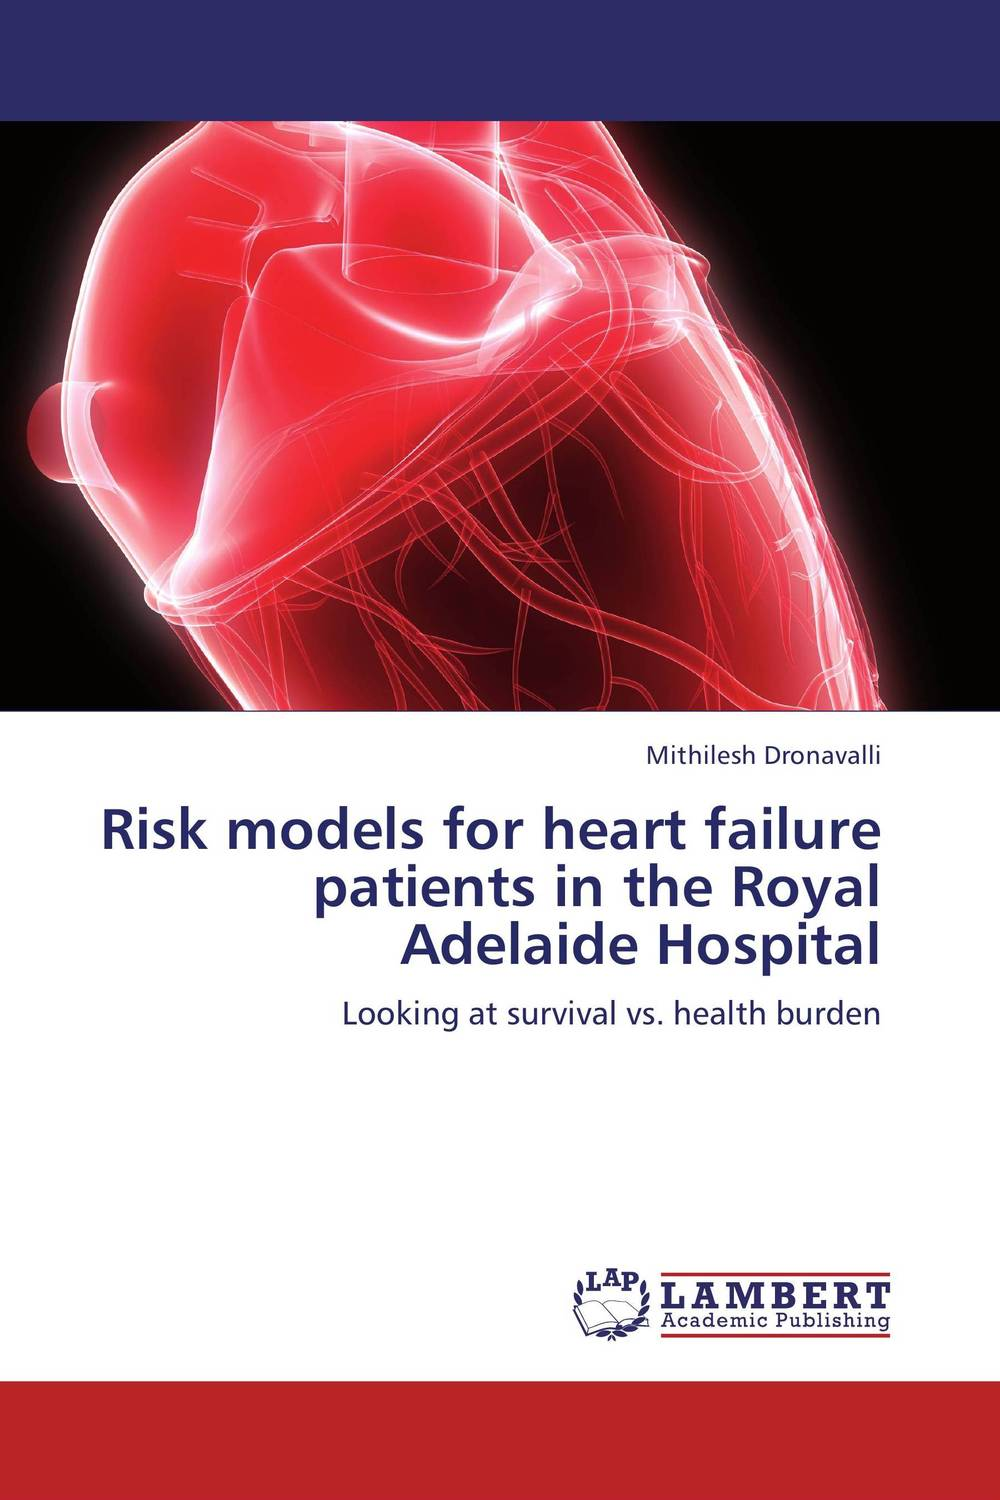 Risk models for heart failure patients in the Royal Adelaide Hospital a statistical approach in modelling maize prices volatility